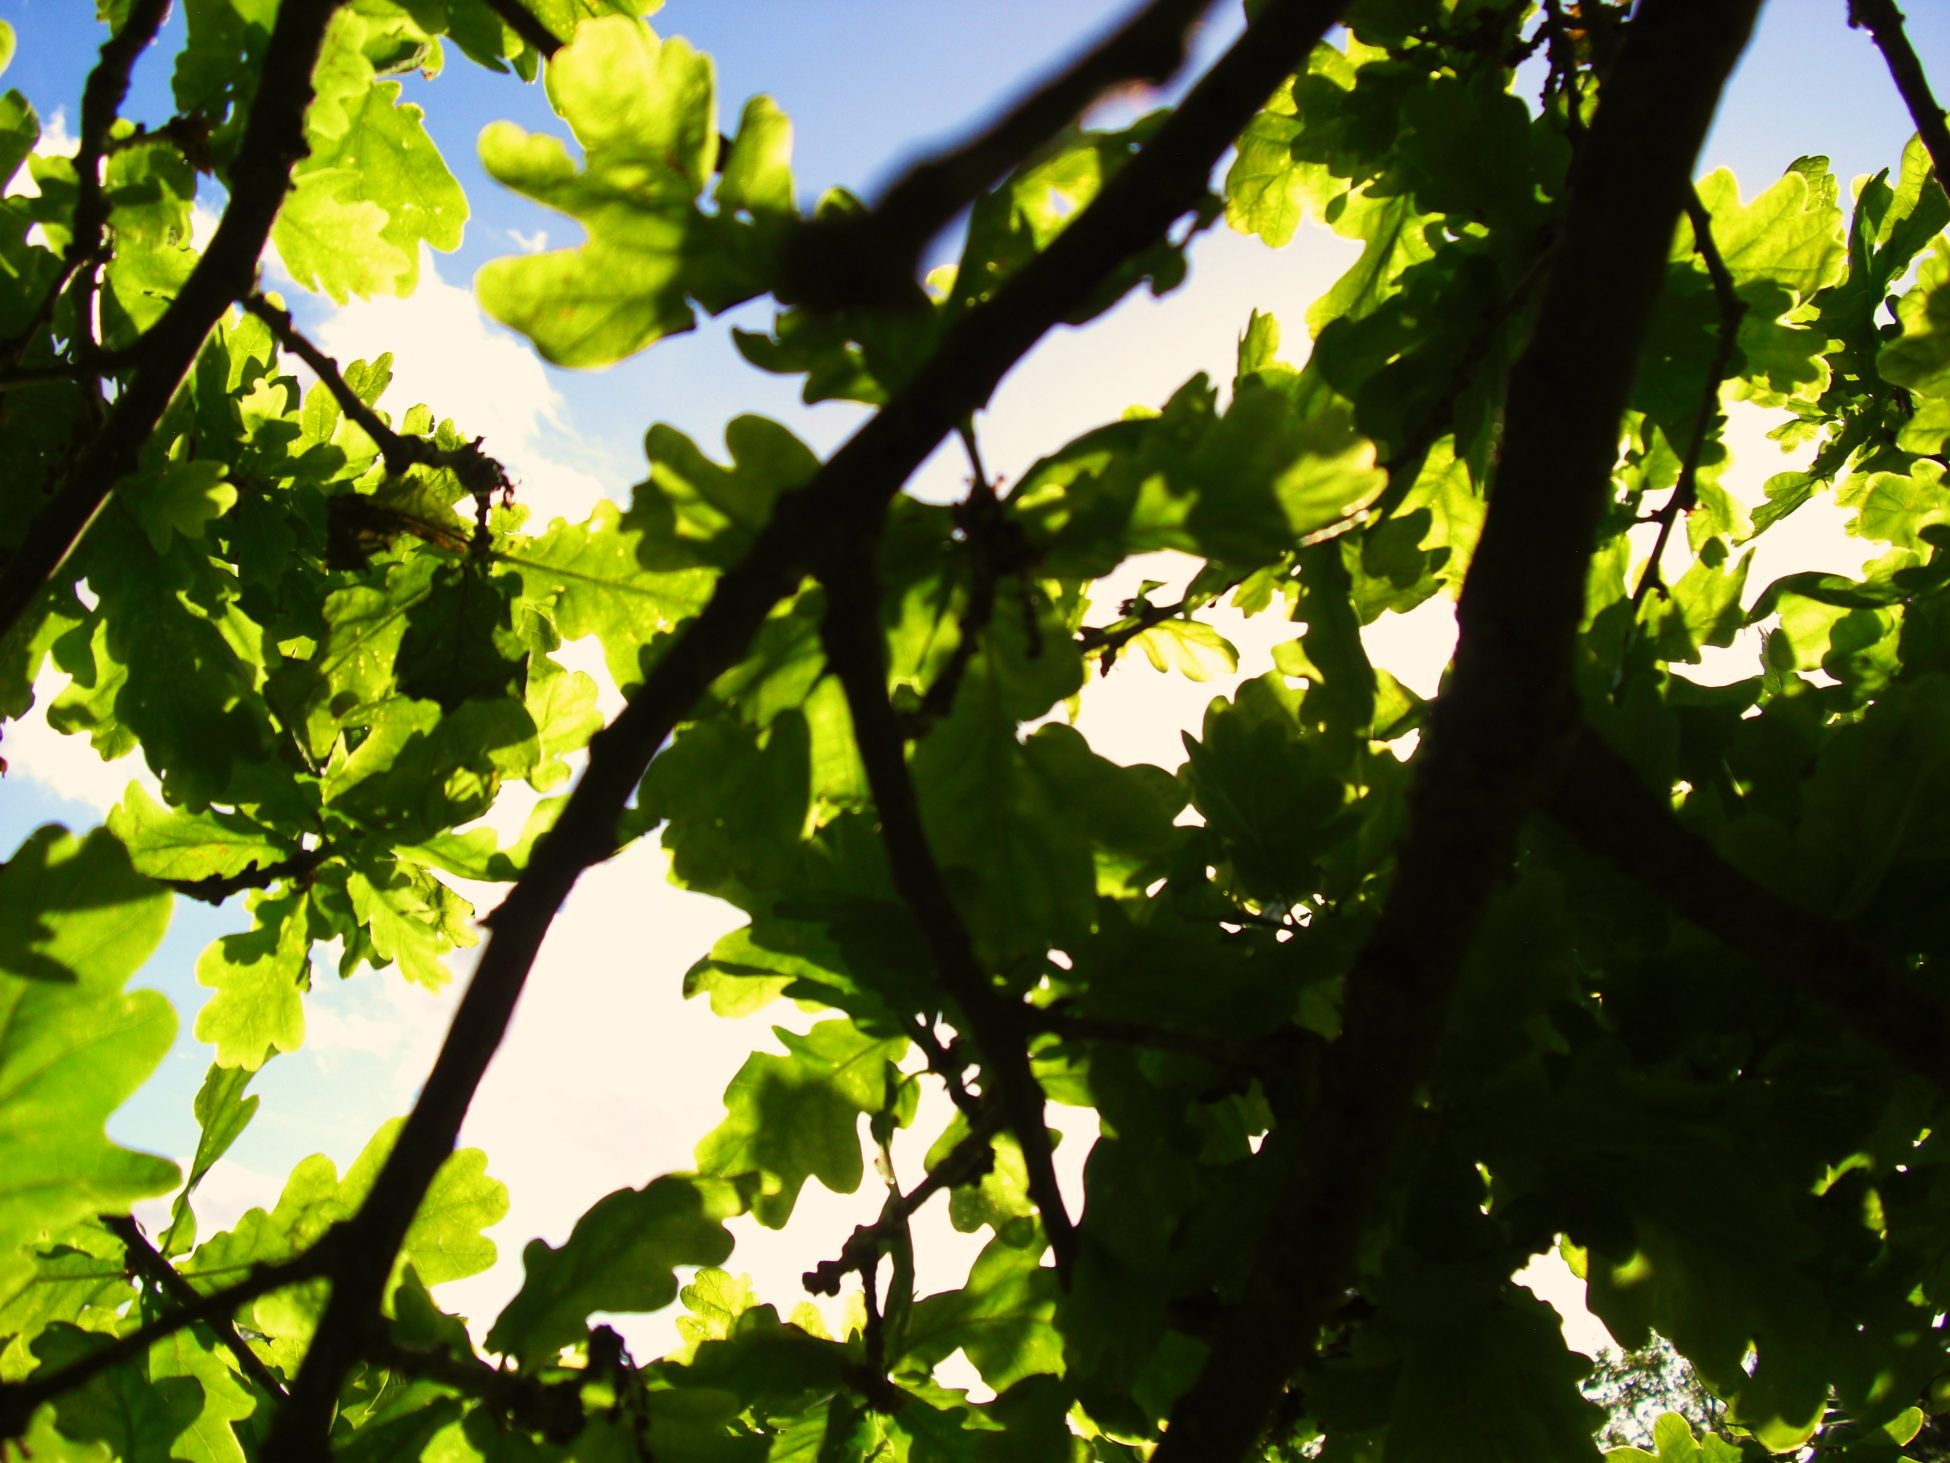 Close up photo with green leaves and tree branches, the sky is blue behind.